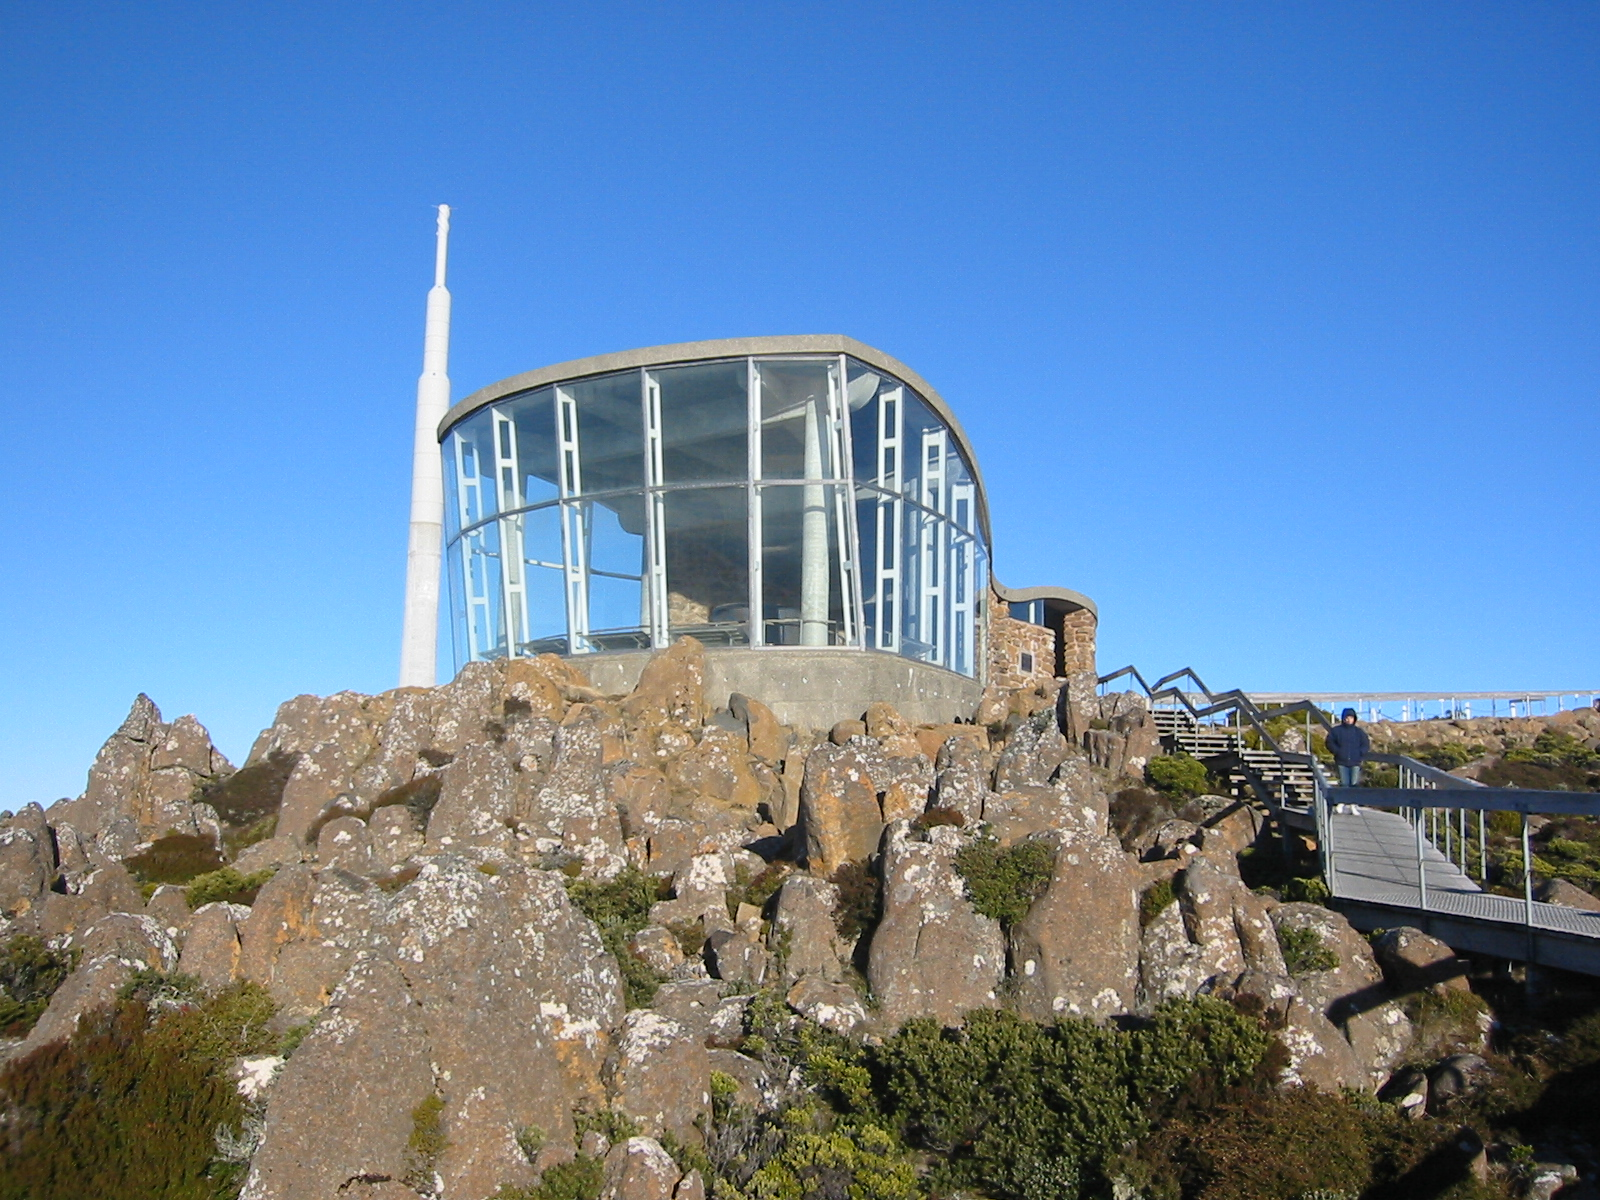 The lookout building near the summit, with the main television and radio transmitter in the background. Photo taken on June 29, 2005.